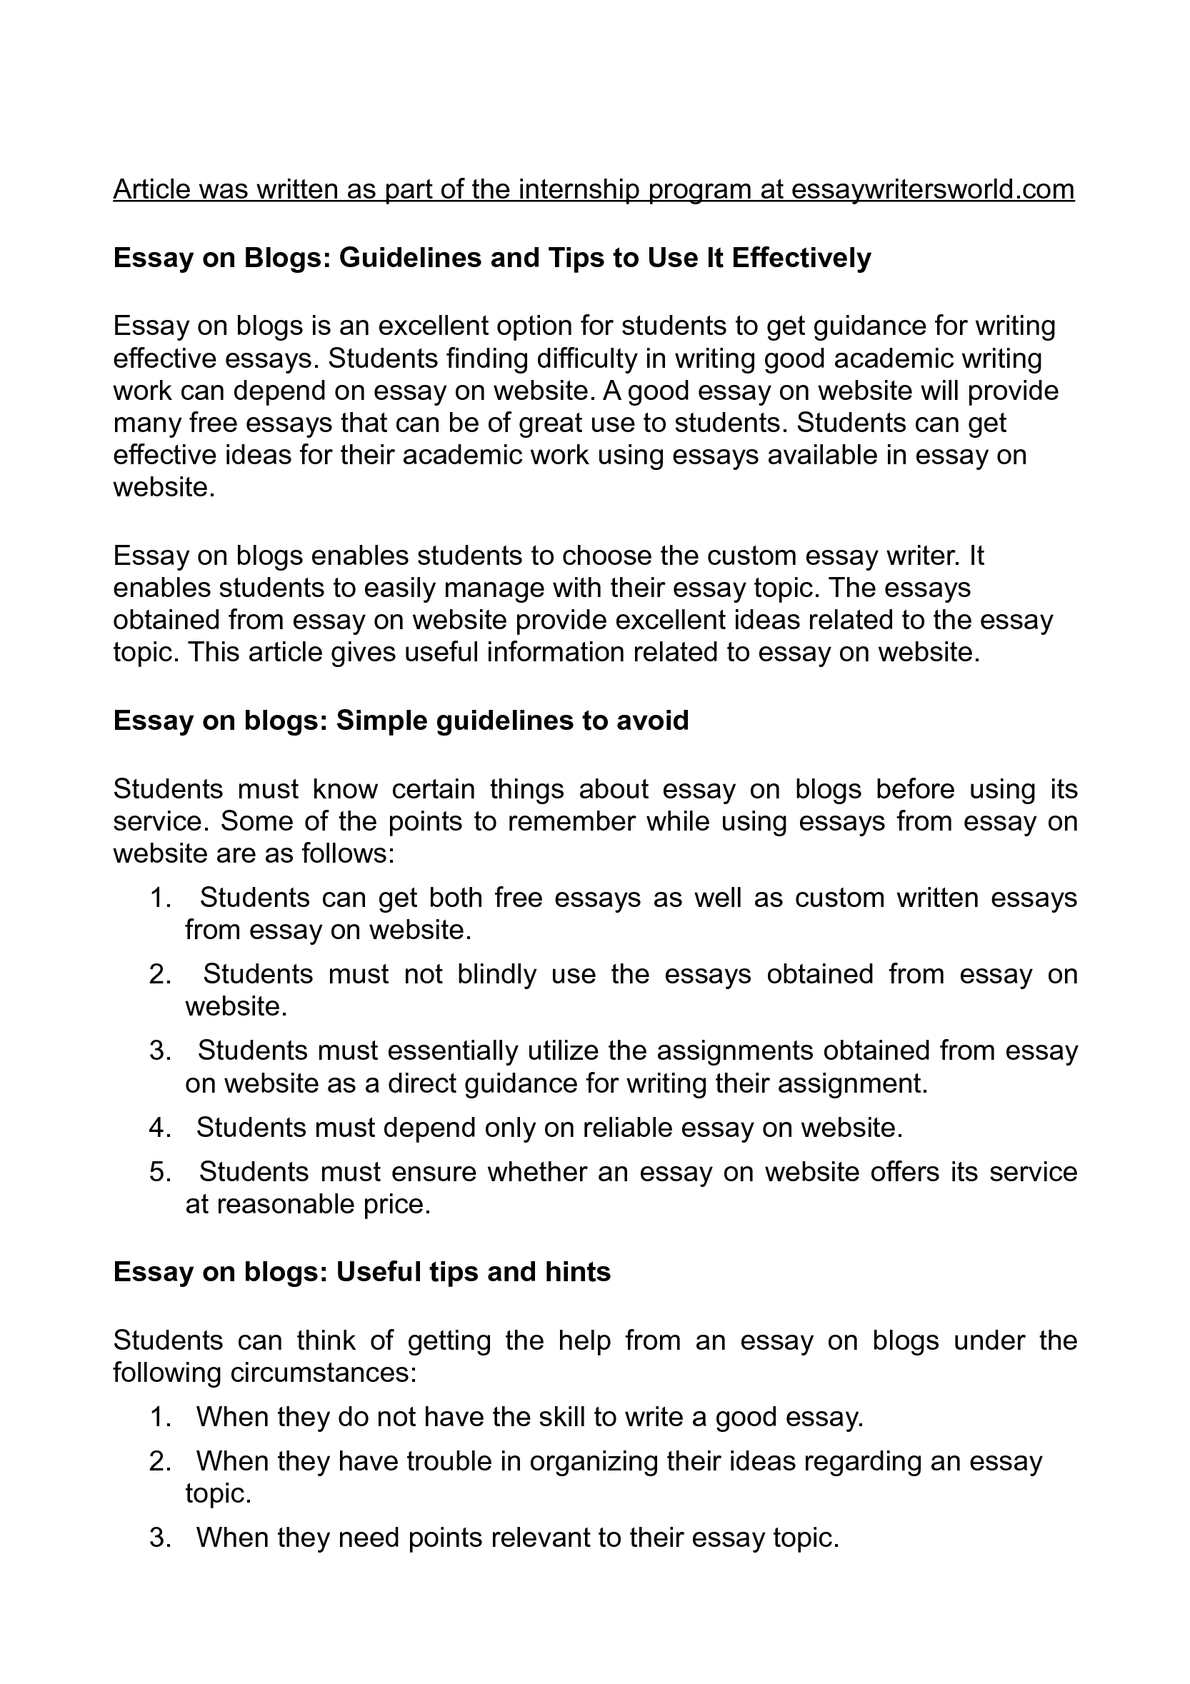 Hire an Essay Writer for the Best Quality Essay Writing Service